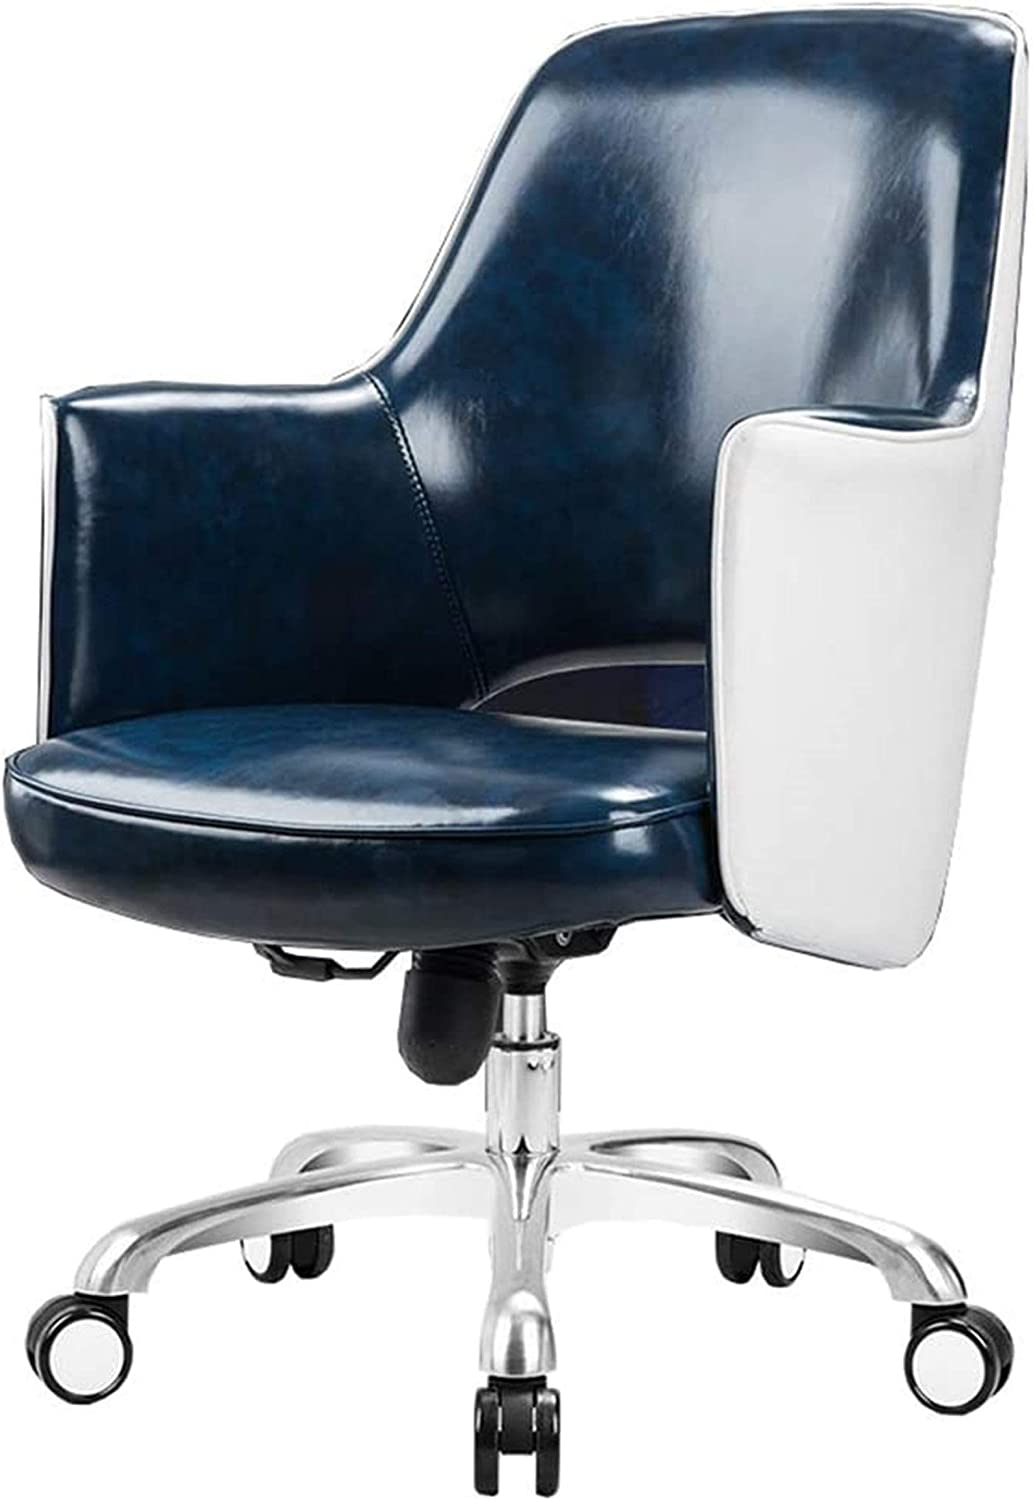 CLOTHES Gaming Chair Office Chair, Waterproof Leather Lounge Chair, Stylish Swivel Chair, U-Shaped Back/Ergonomic Design, High Resilience Mat (Blue, Brown, Black),Desk Chair (Color : Blue)